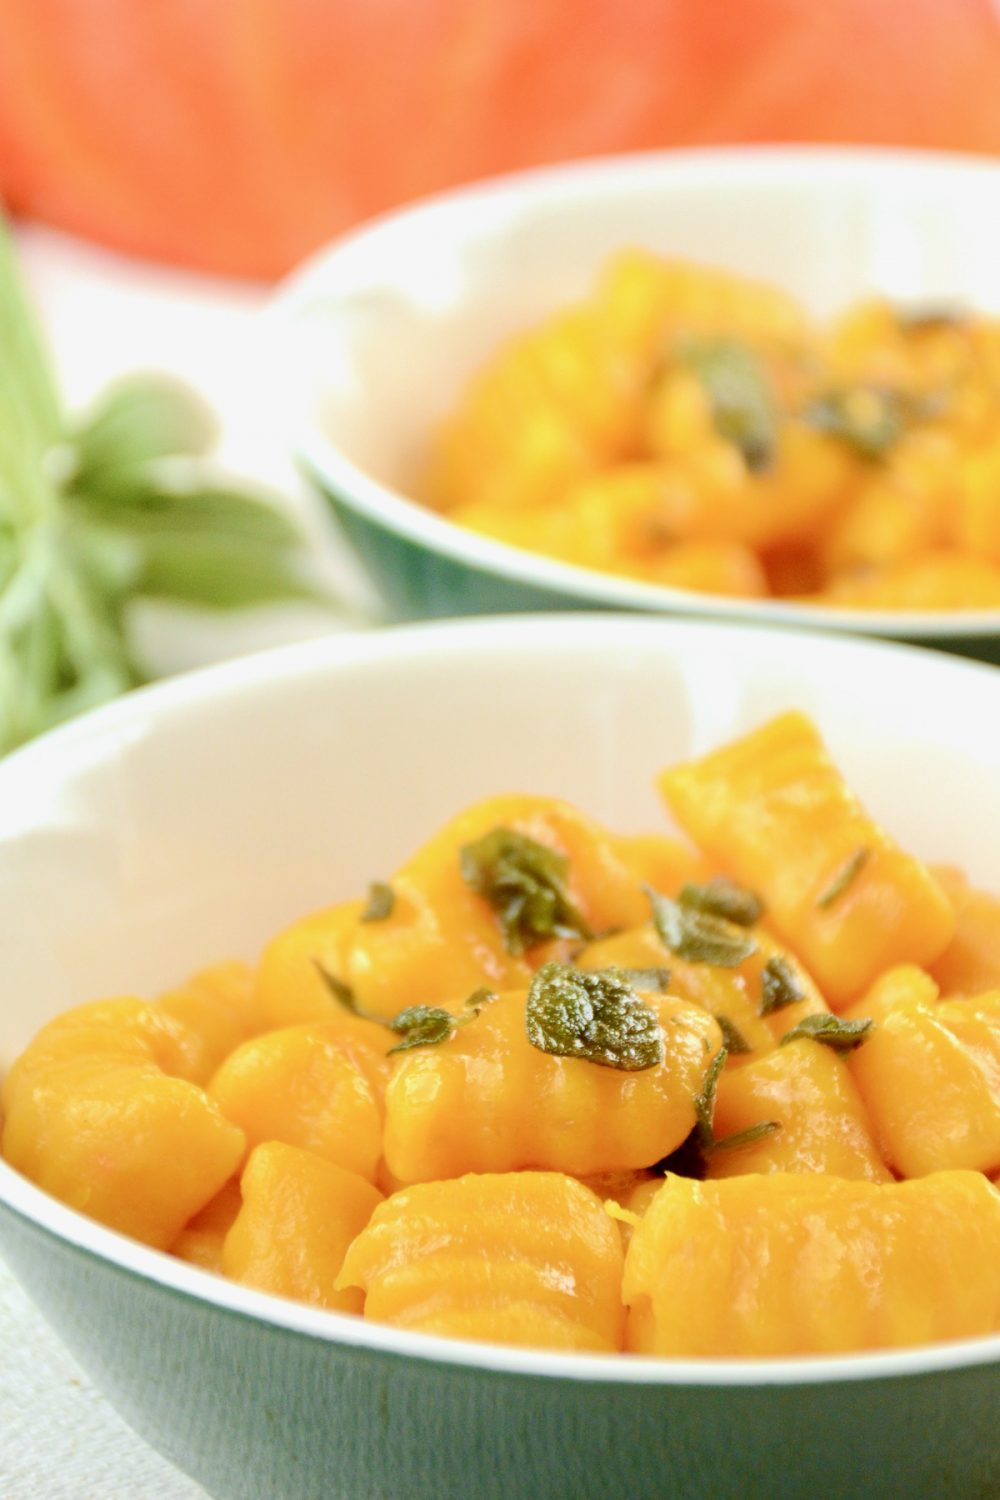 Two bowls containing pumpkin gnocchi with the bright orange skin of a squash in the background.